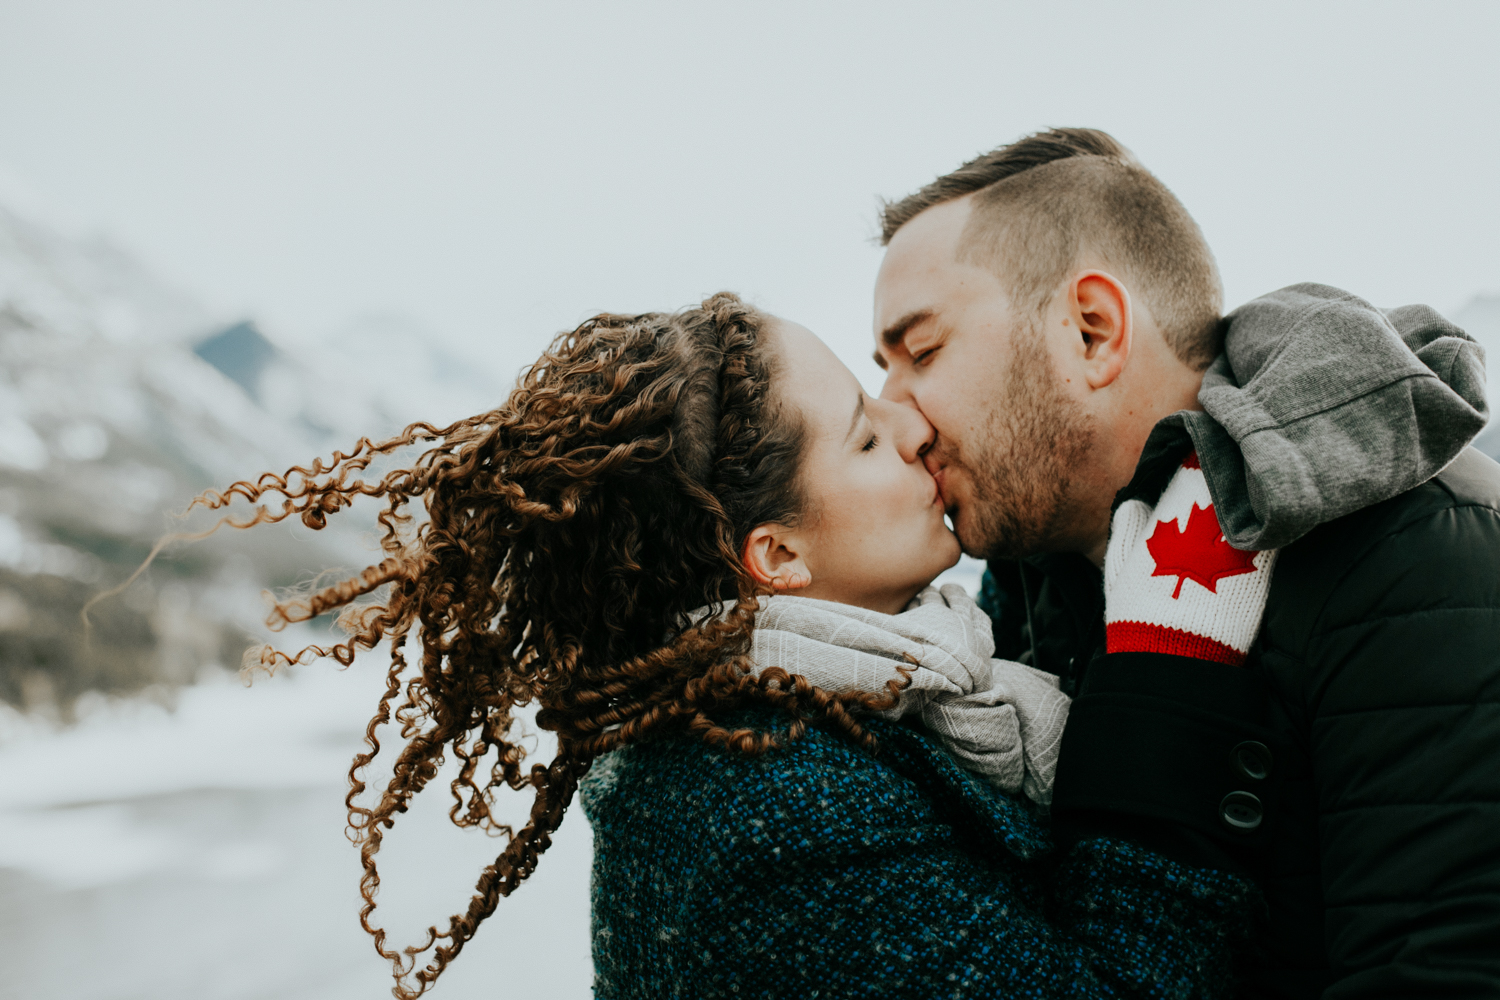 waterton-photographer-love-and-be-loved-photography-trent-danielle-engagement-winter-picture-image-photo-58.jpg